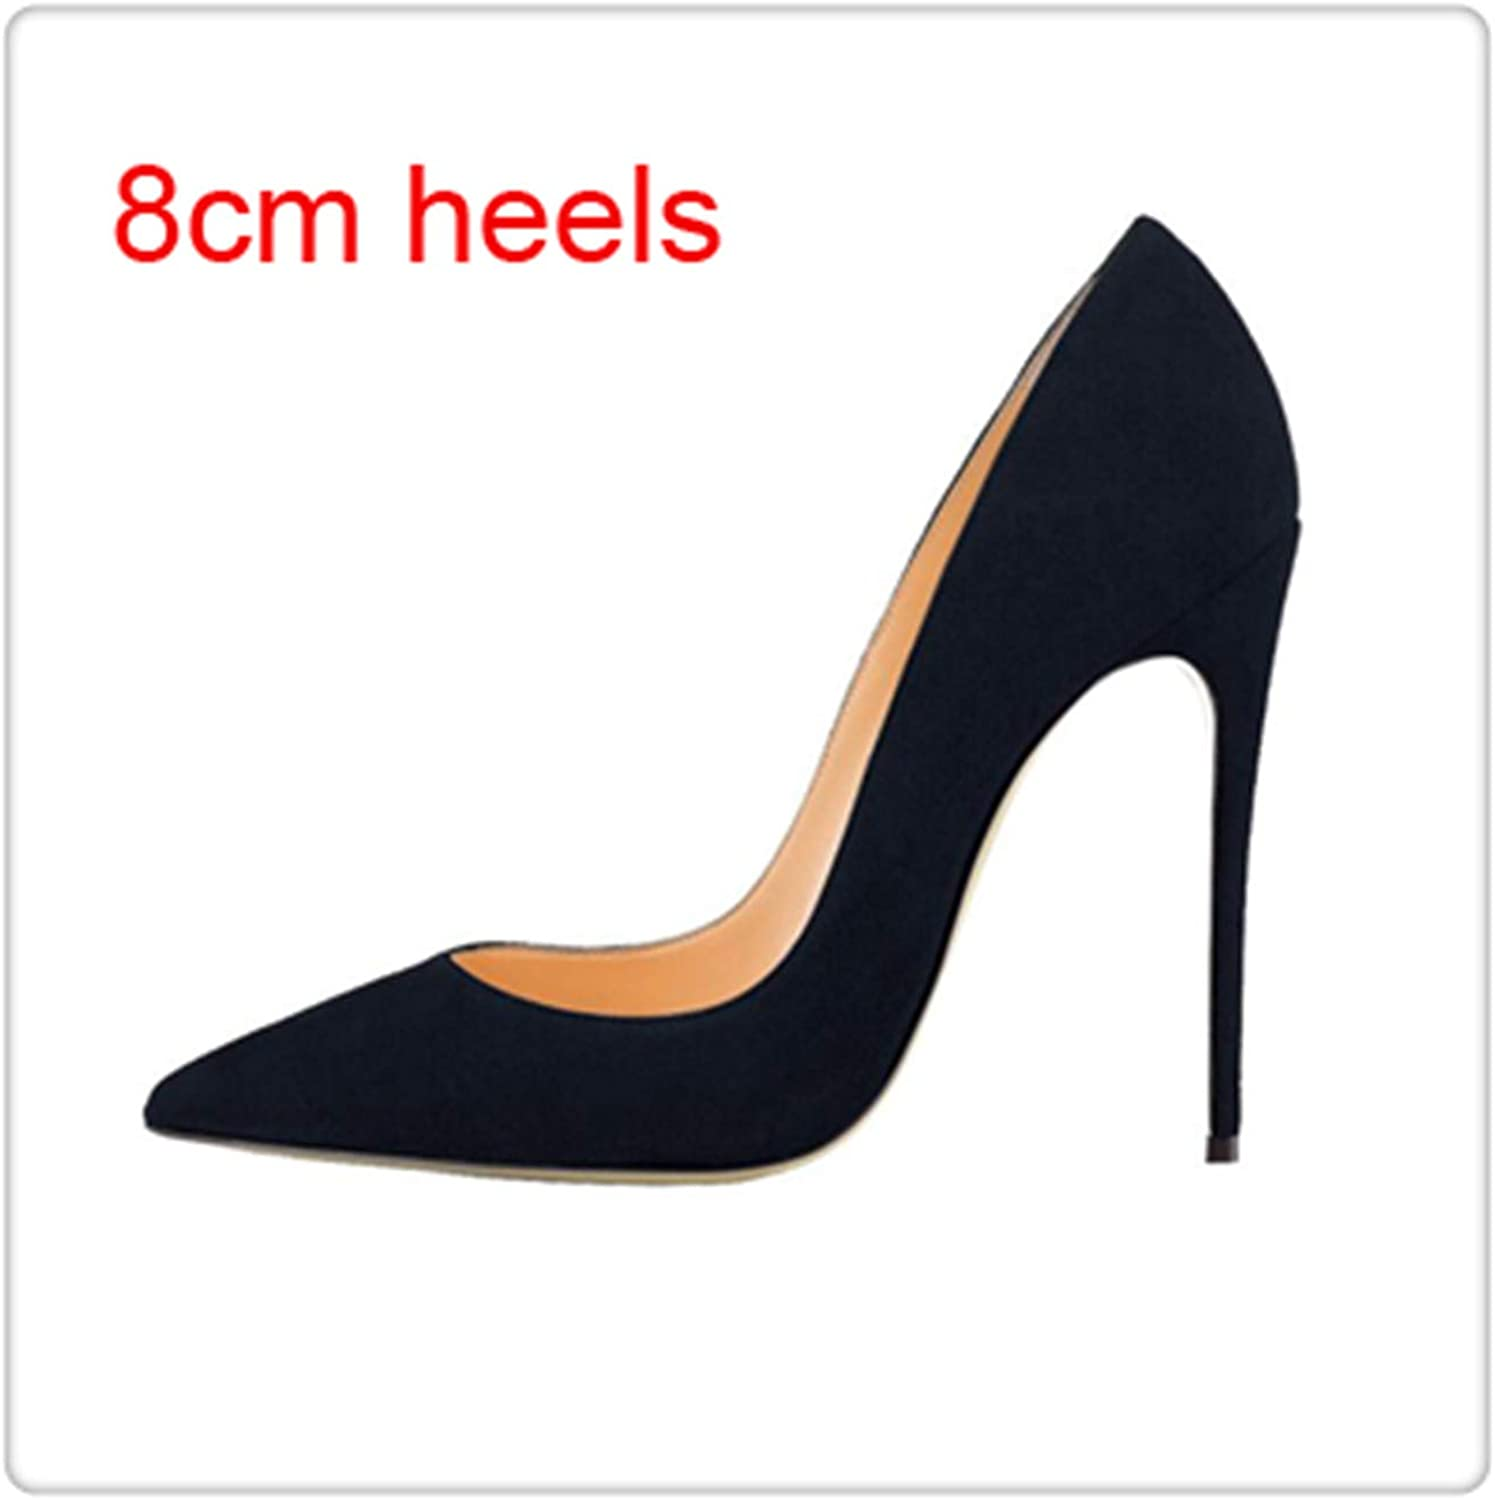 KKEPO& Plus Size Kid Suede Classical Shallow Women Dress shoes 6cm 8cm 10cm 12cm Thin High Heels Sexy Woman Party Pumps Black Suede 8cm 10